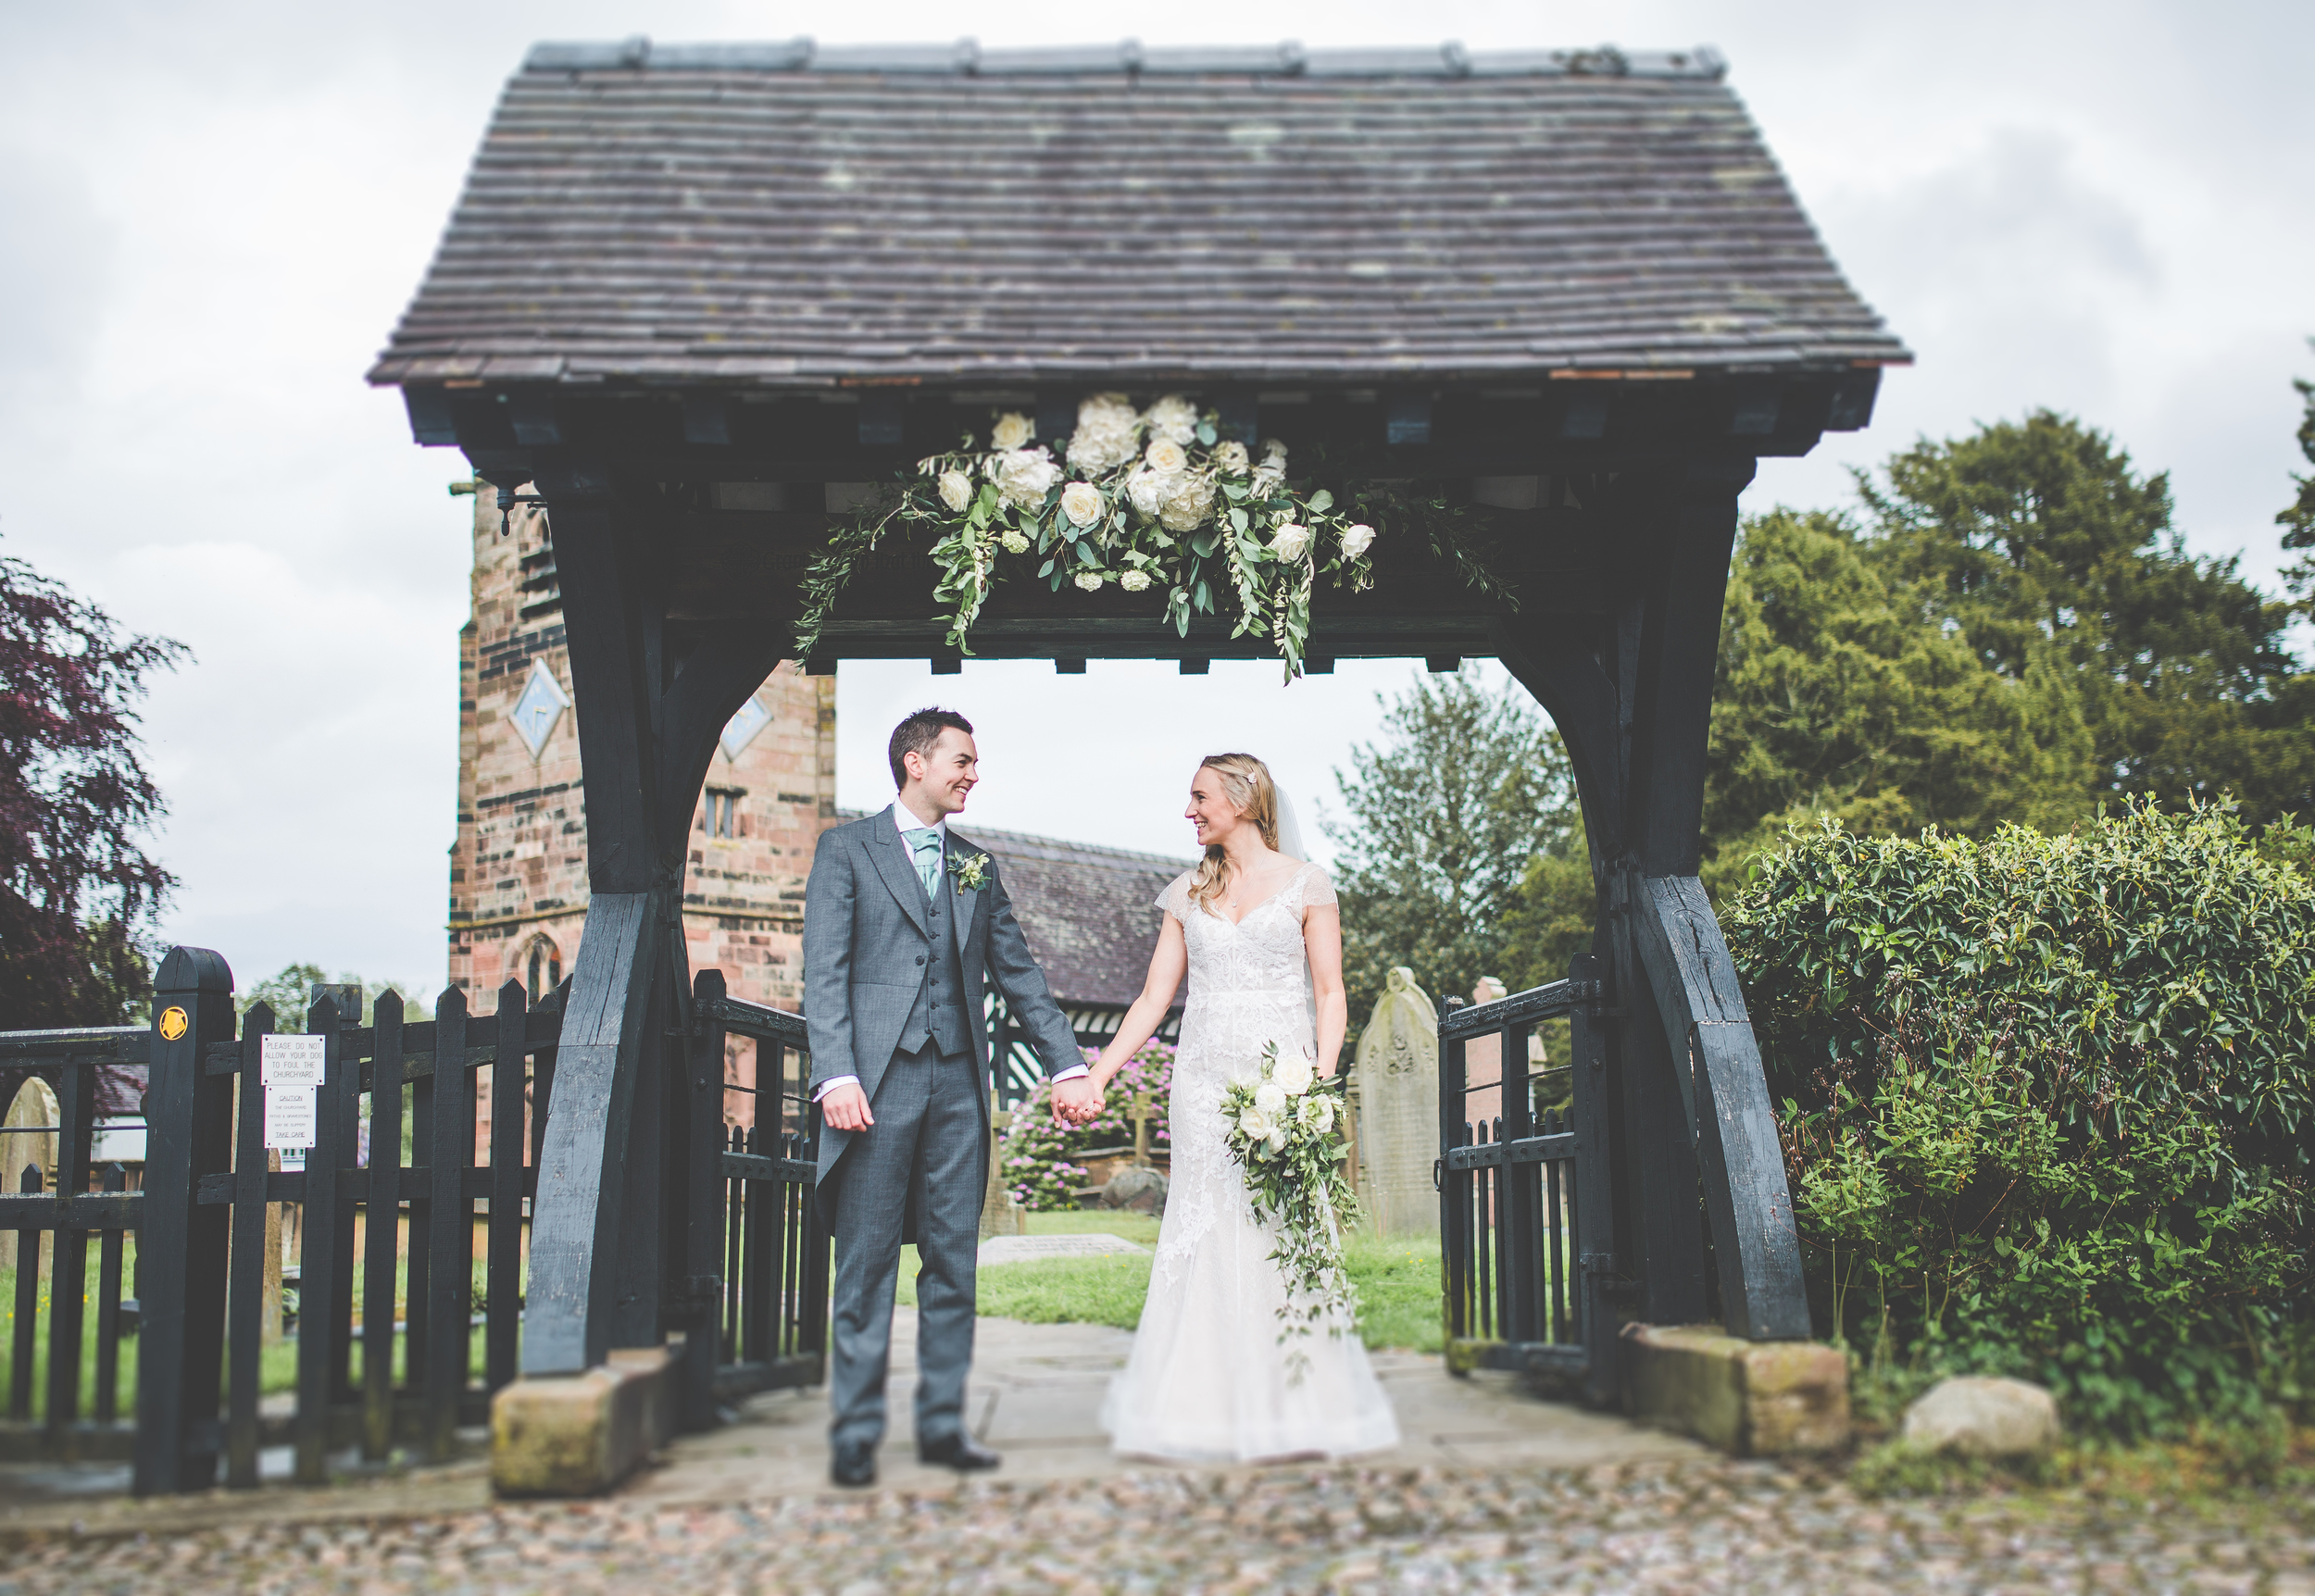 Natural and relaxed wedding photography Cheshire - outside church